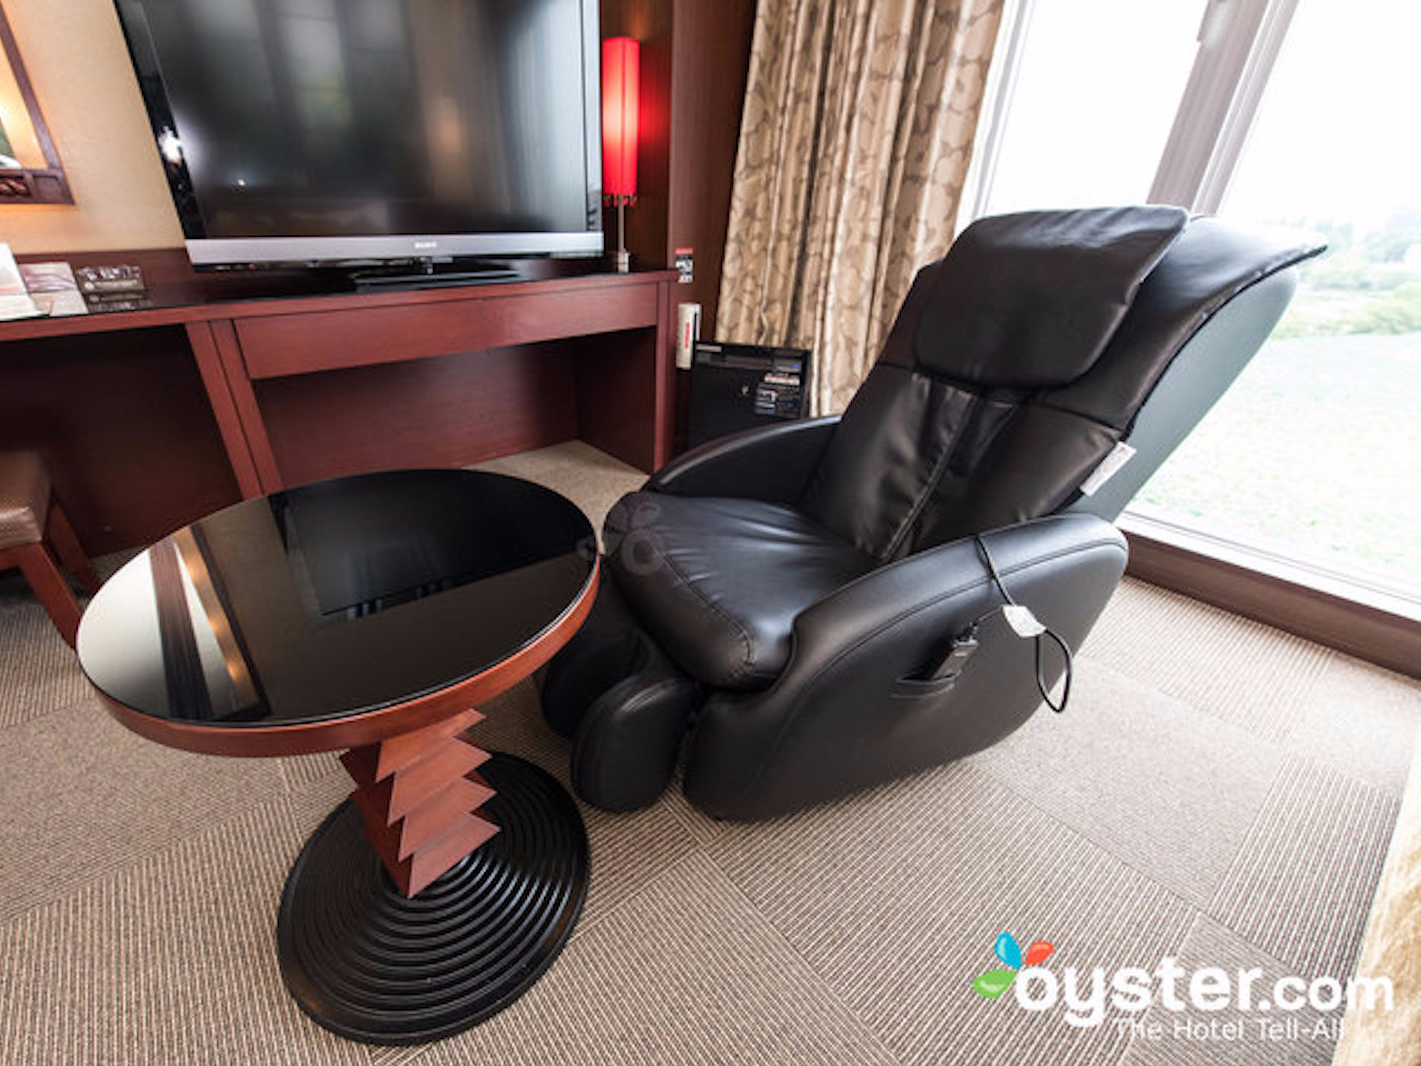 asian massage chairs chair armrest covers for office unexpected things you 39ll find in a japan hotel room